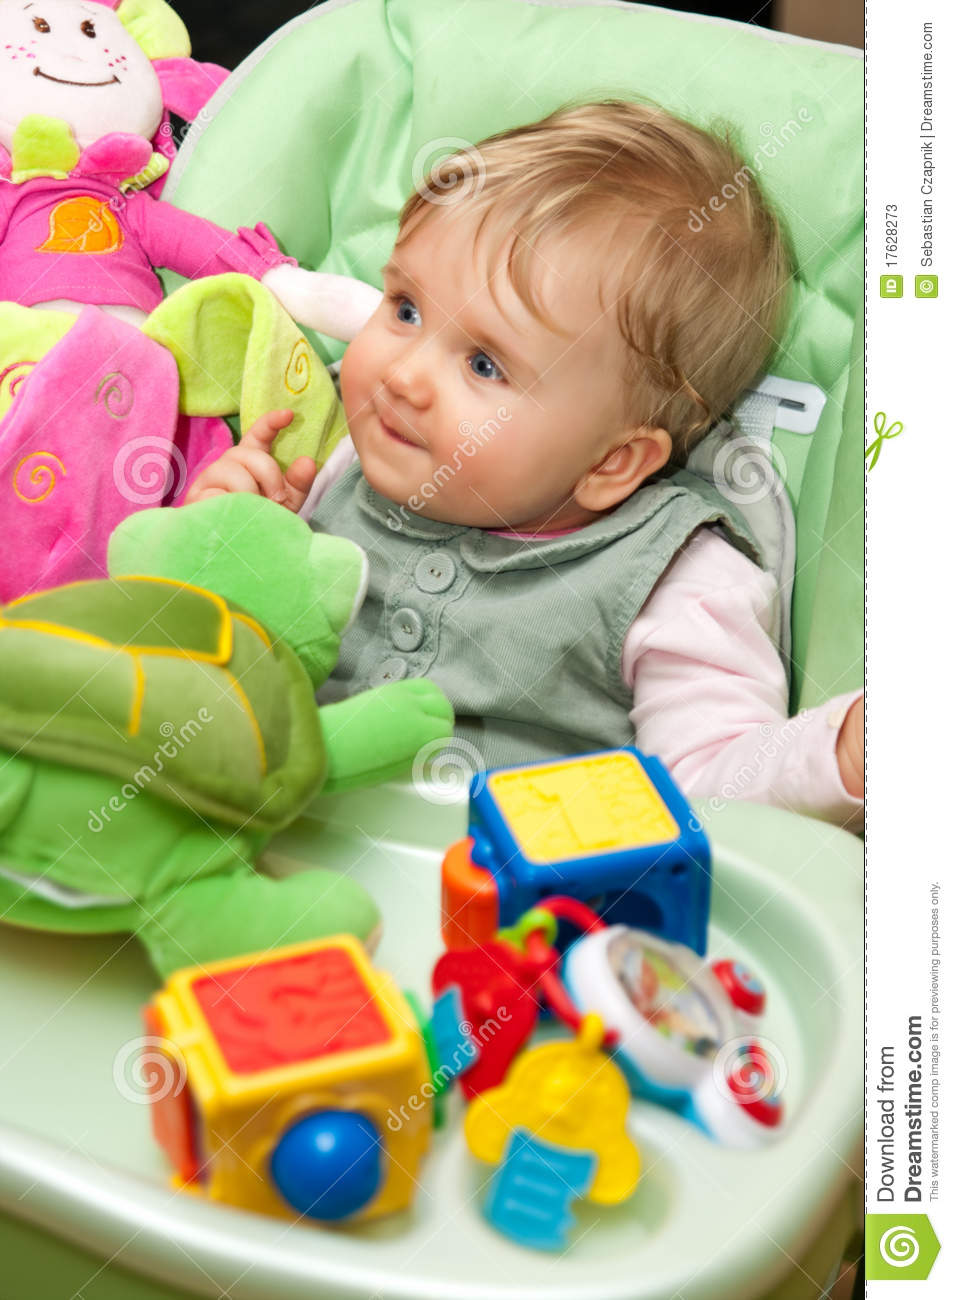 Newborn Baby Girl Toys : Baby girl playing with toys stock image